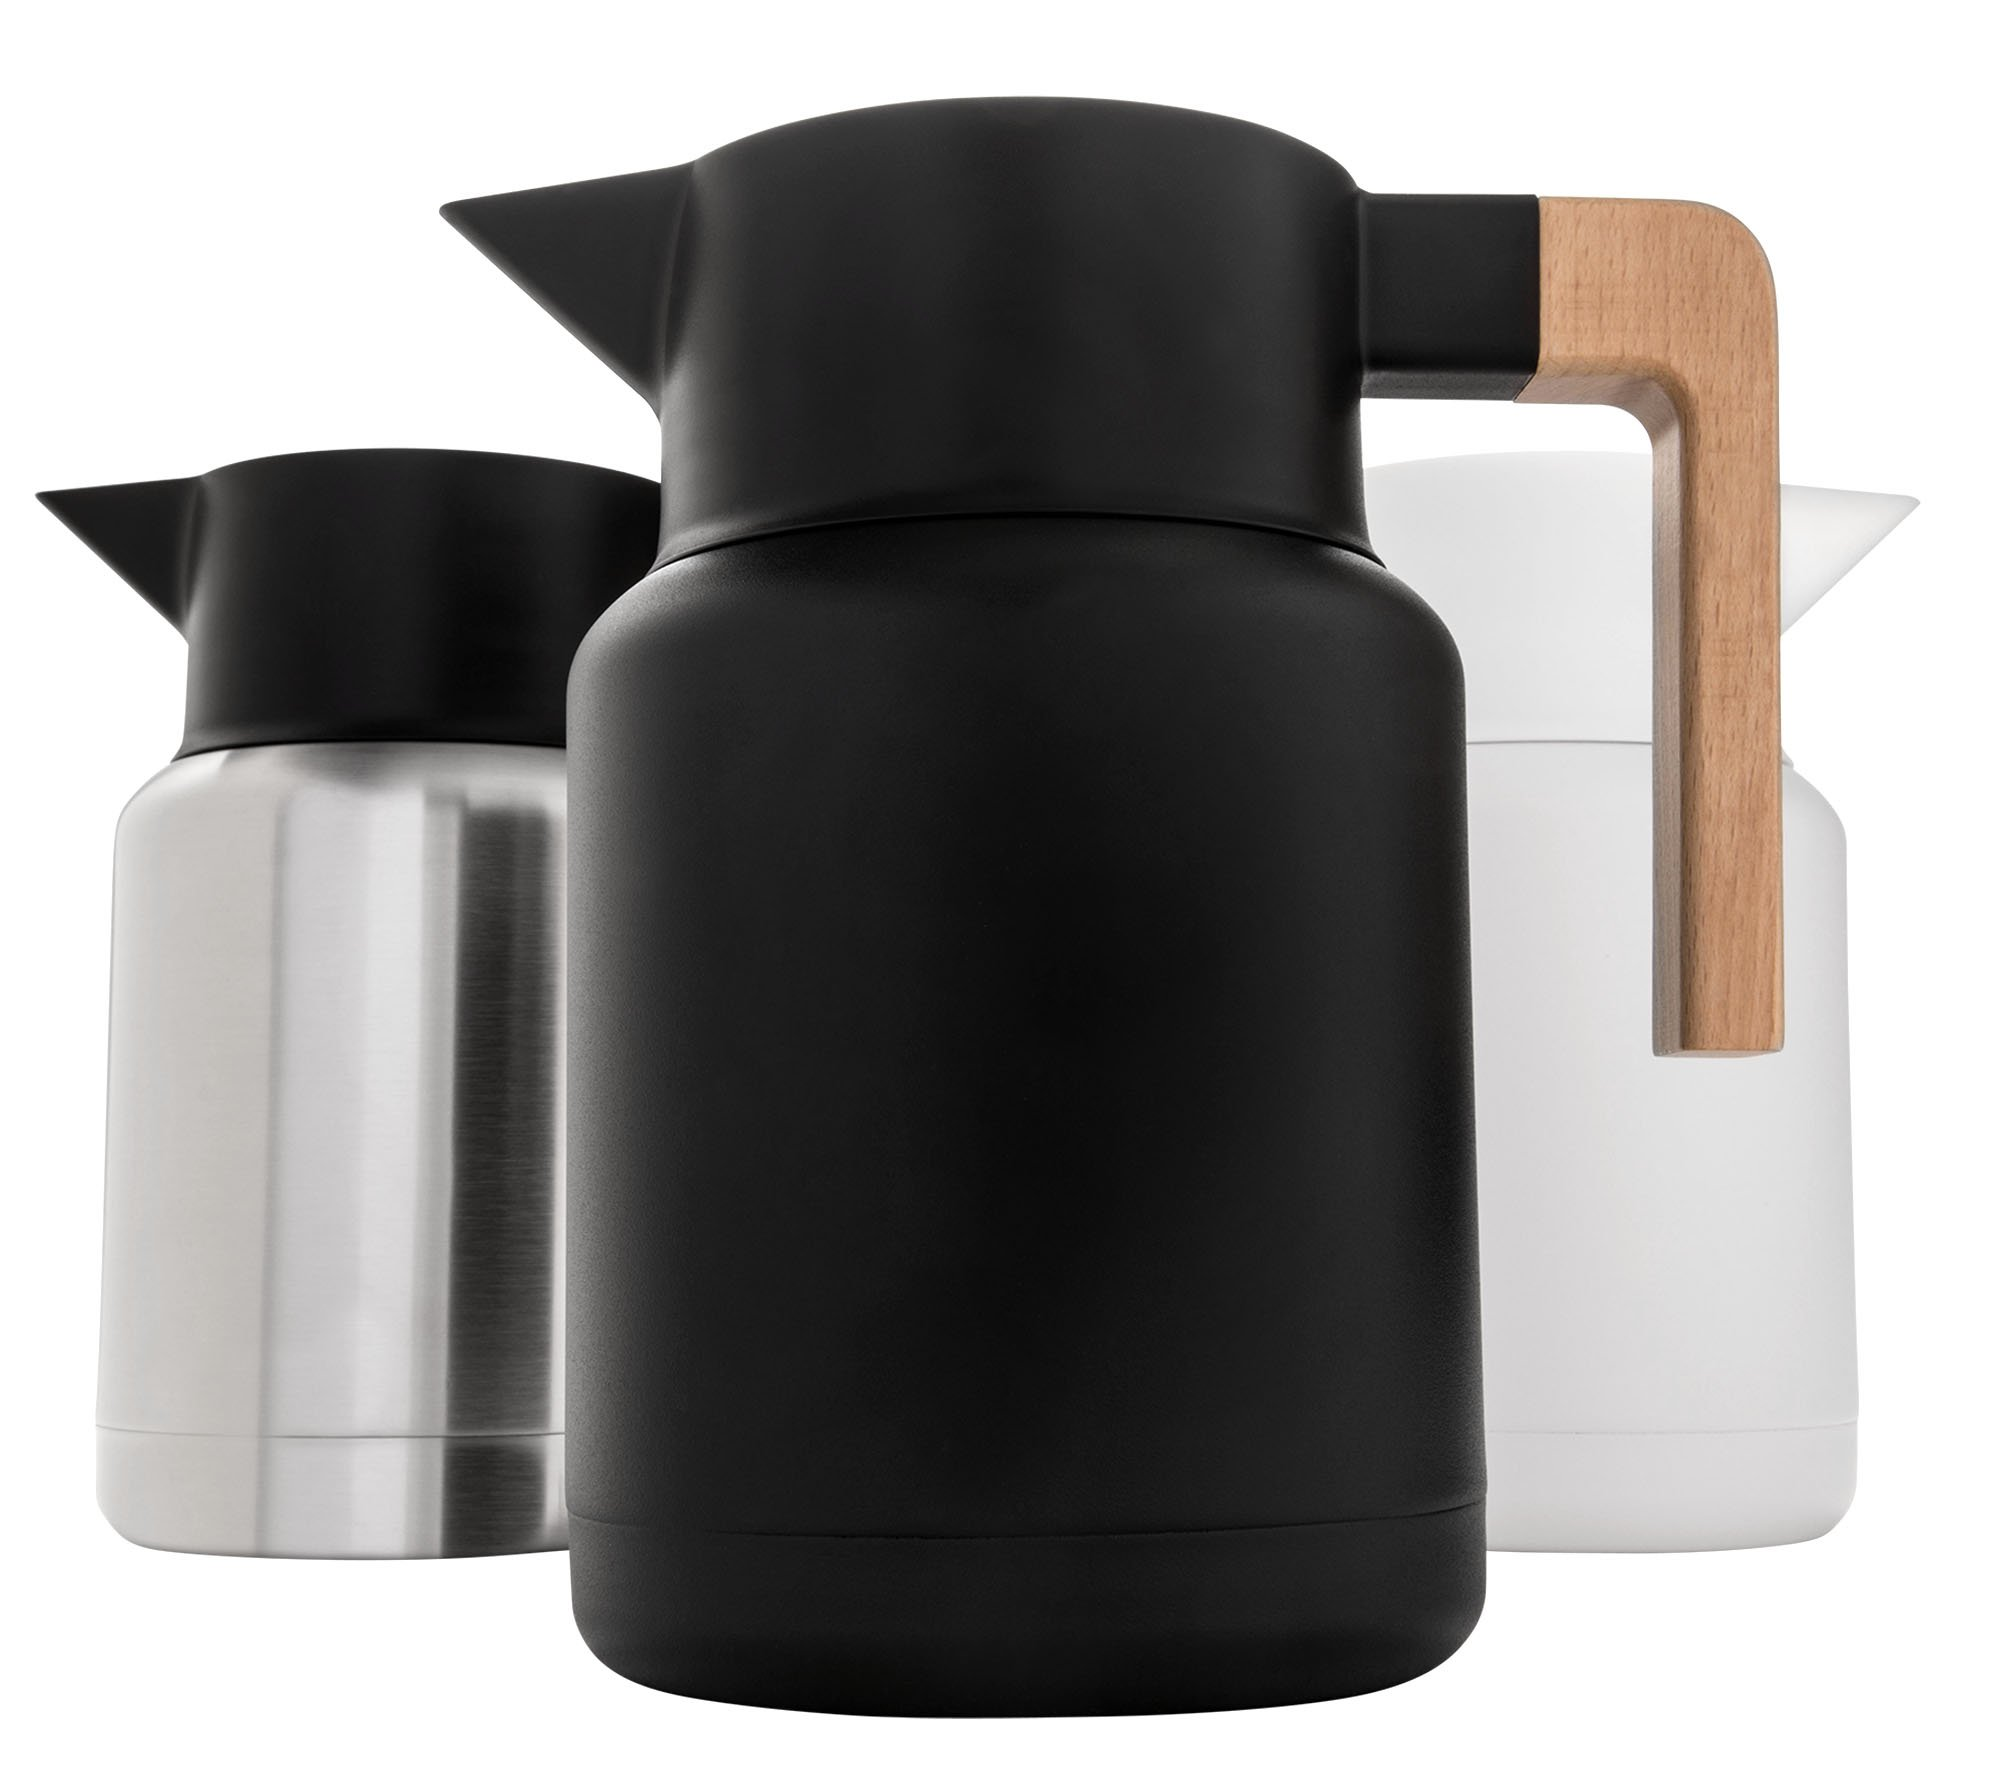 Large Thermal Coffee Carafe - Stainless Steel, Double Walled Thermal Pots For Coffee and Teas by Hastings Collective - Black, Vacuum Carafes With Removable Tea Infuser and Strainer | 50 Fl Oz.